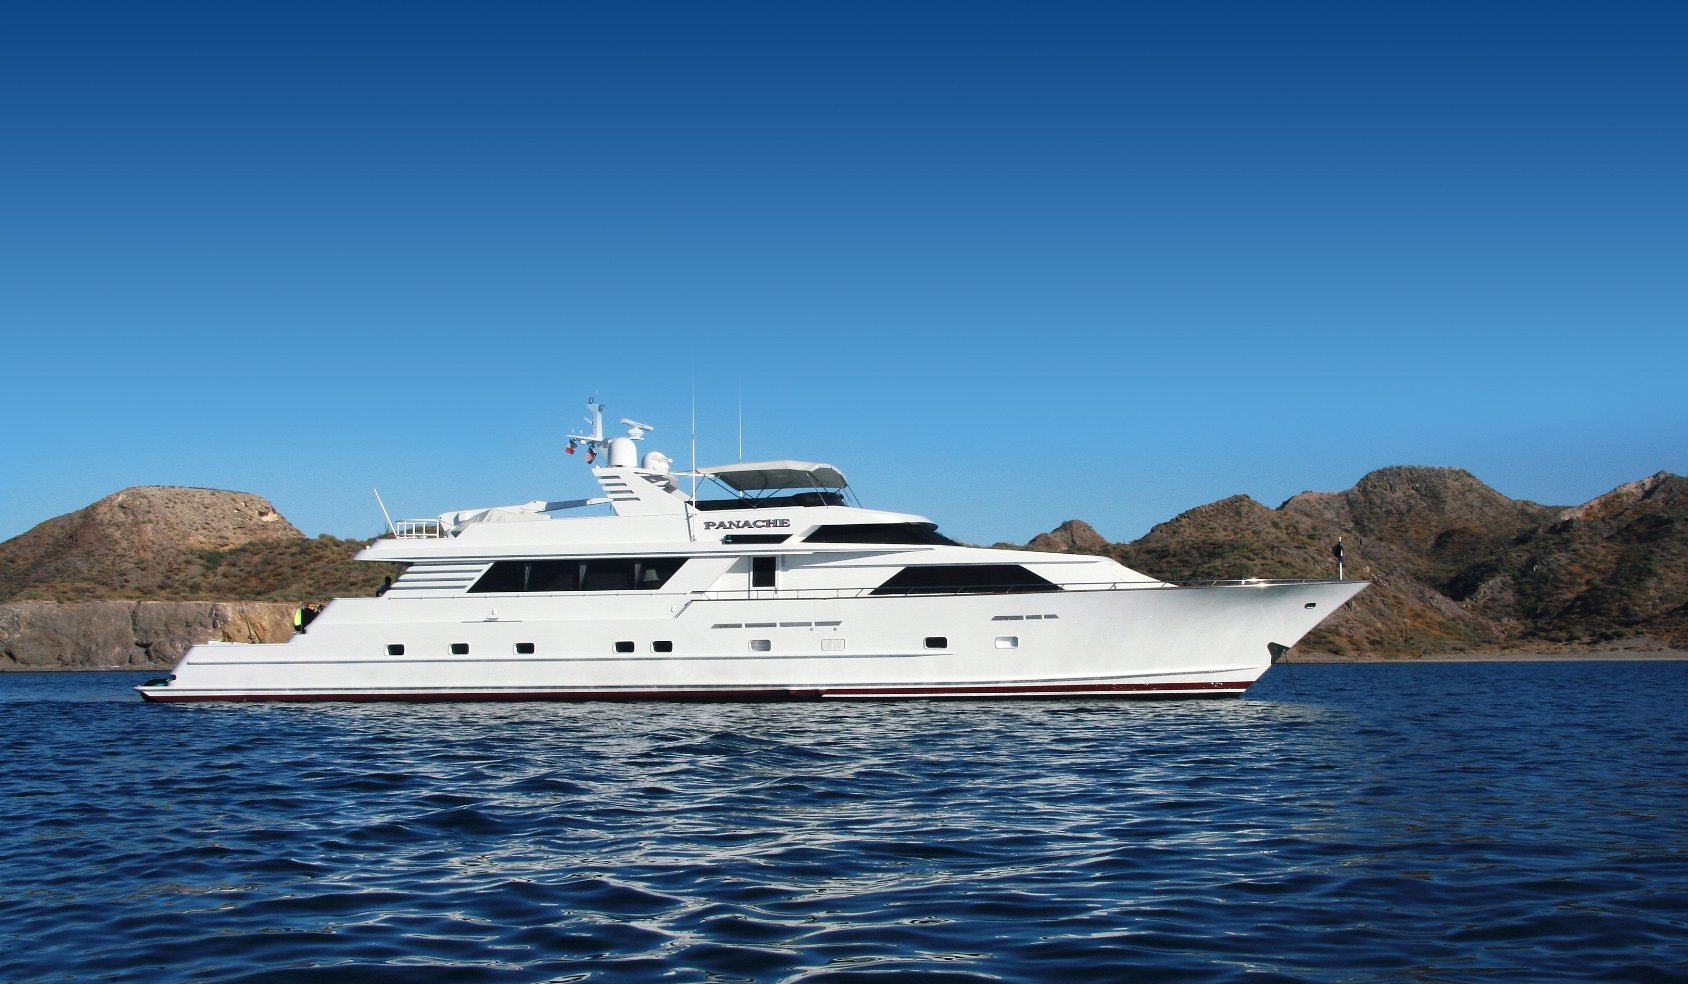 Side view of a Super Yacht called Panache